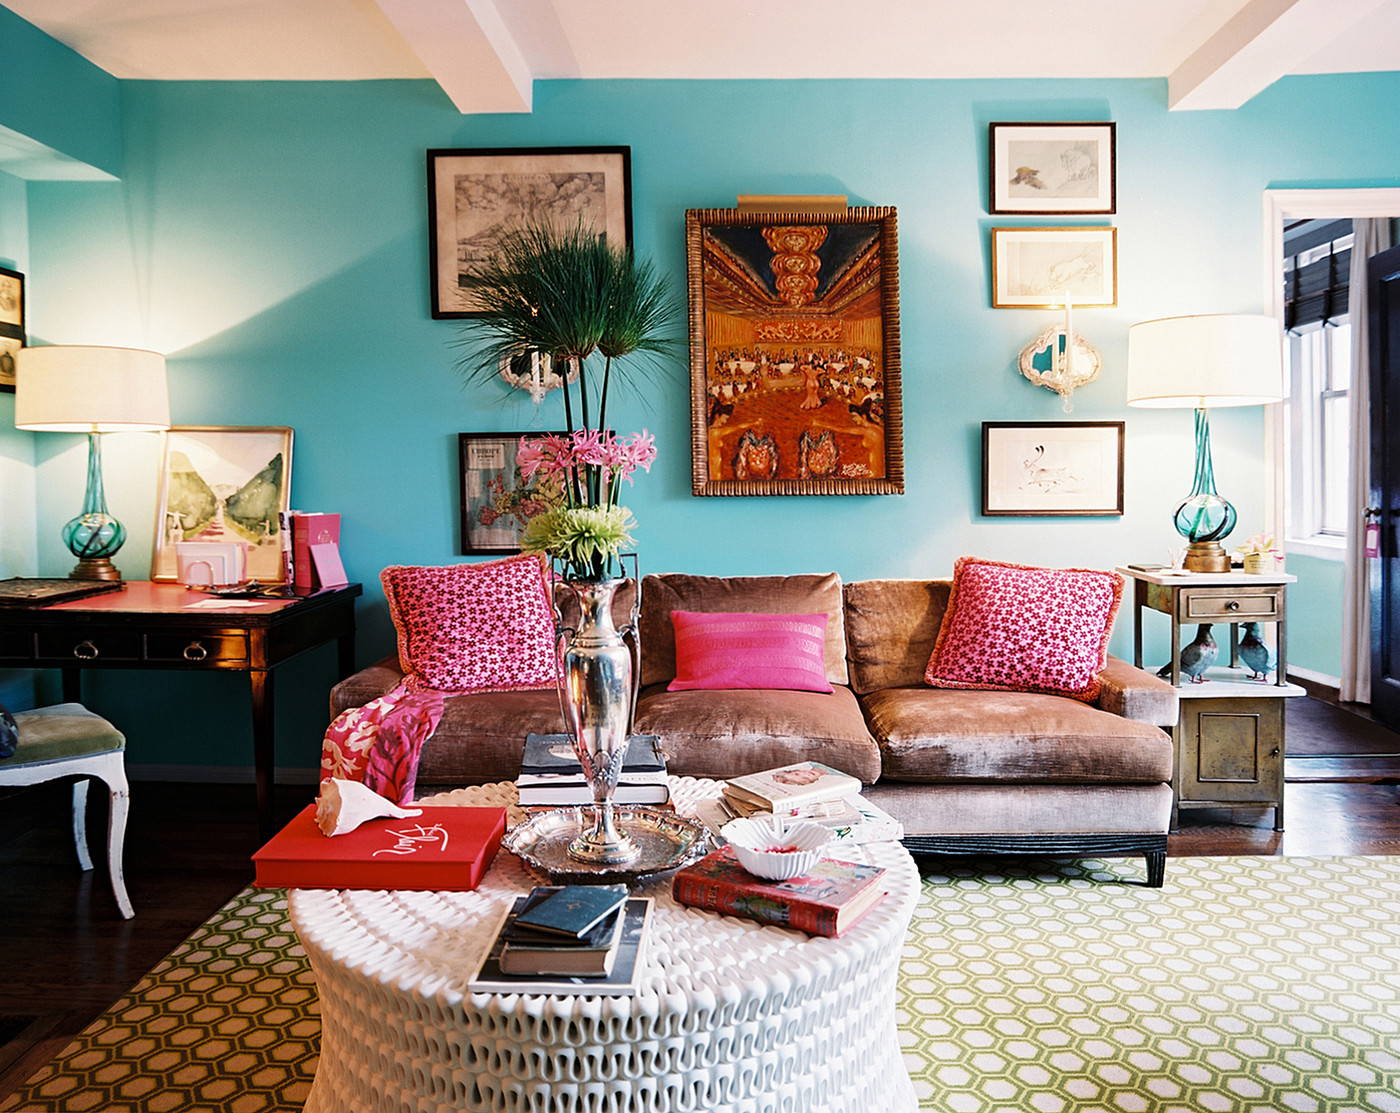 Boho Vibes To Your Spaces 6 Tips For Decorating Your House Bohemian